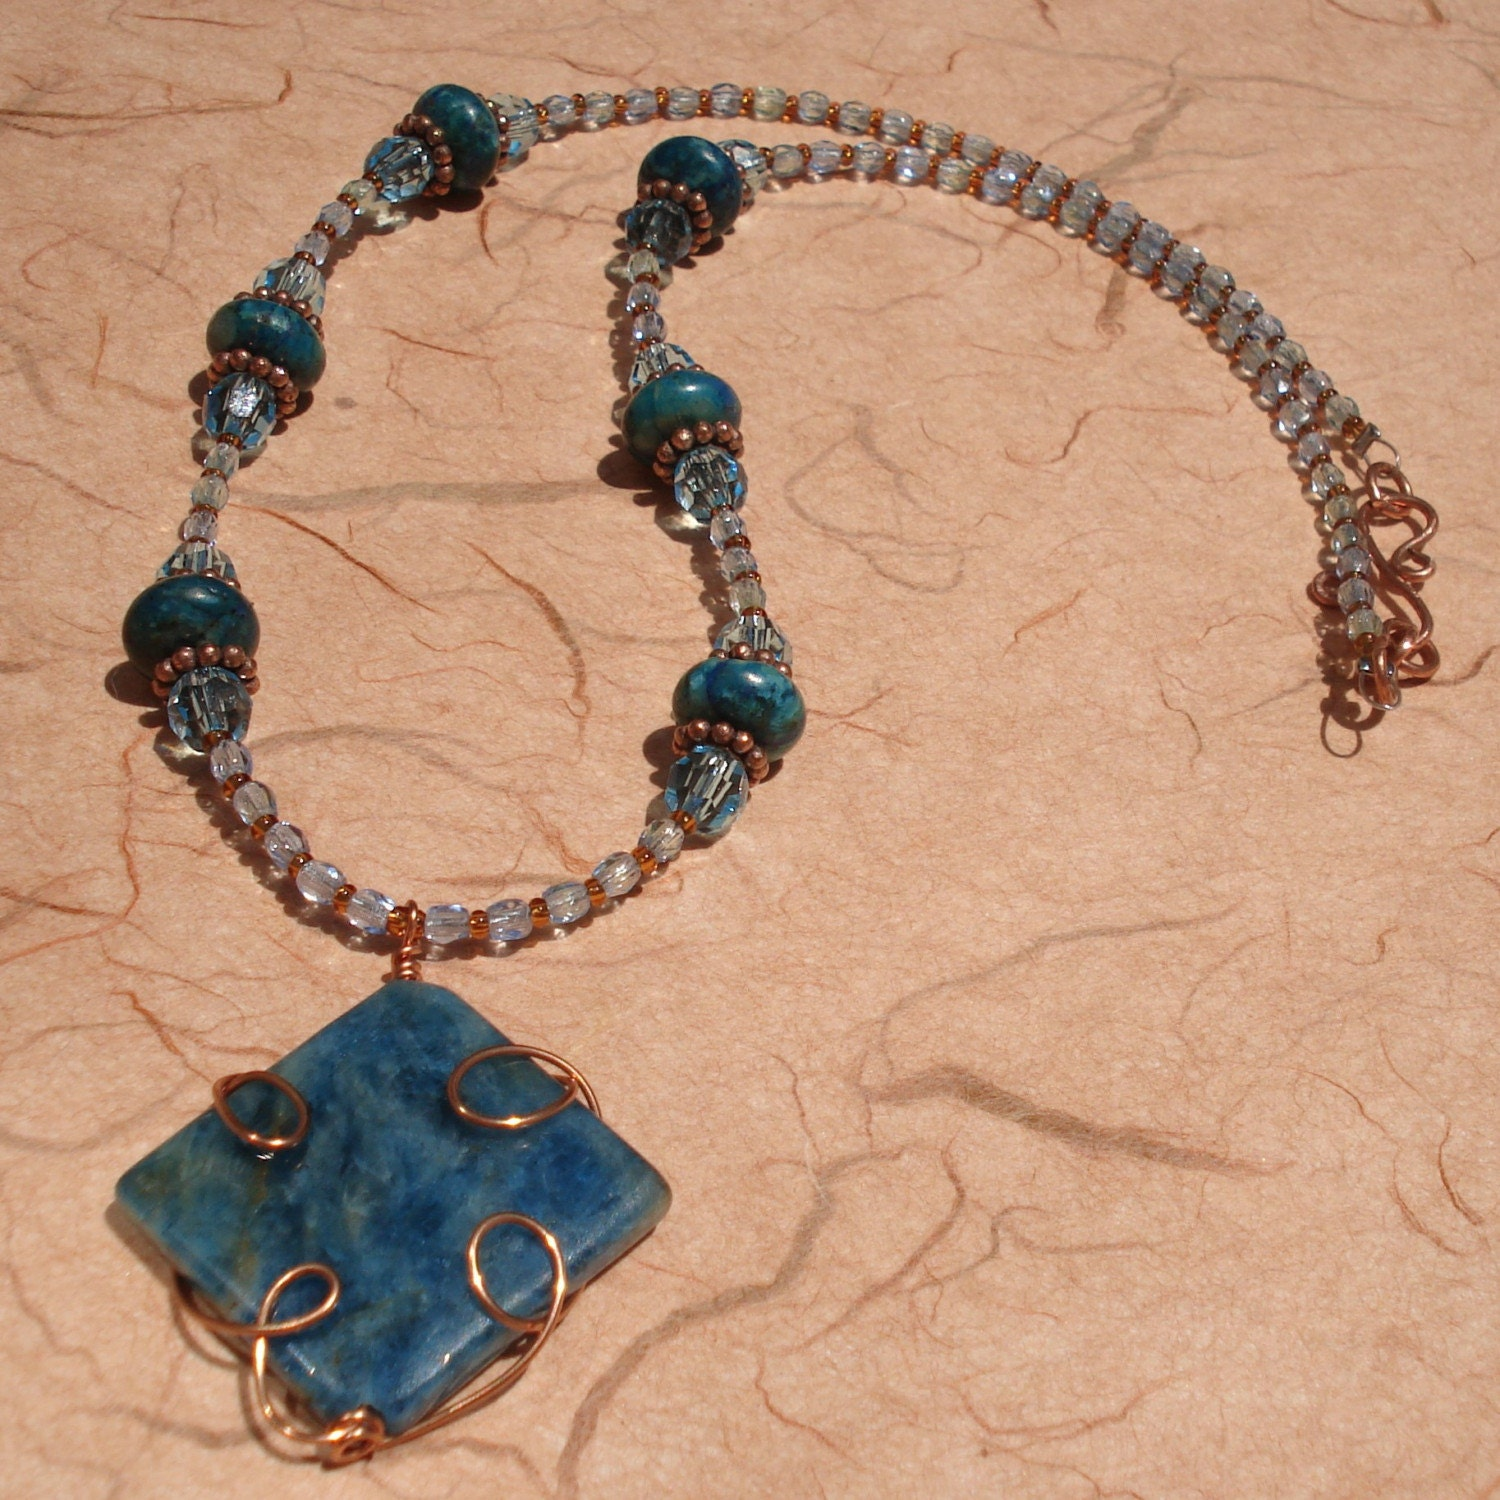 blue apatite pendant with copper beads